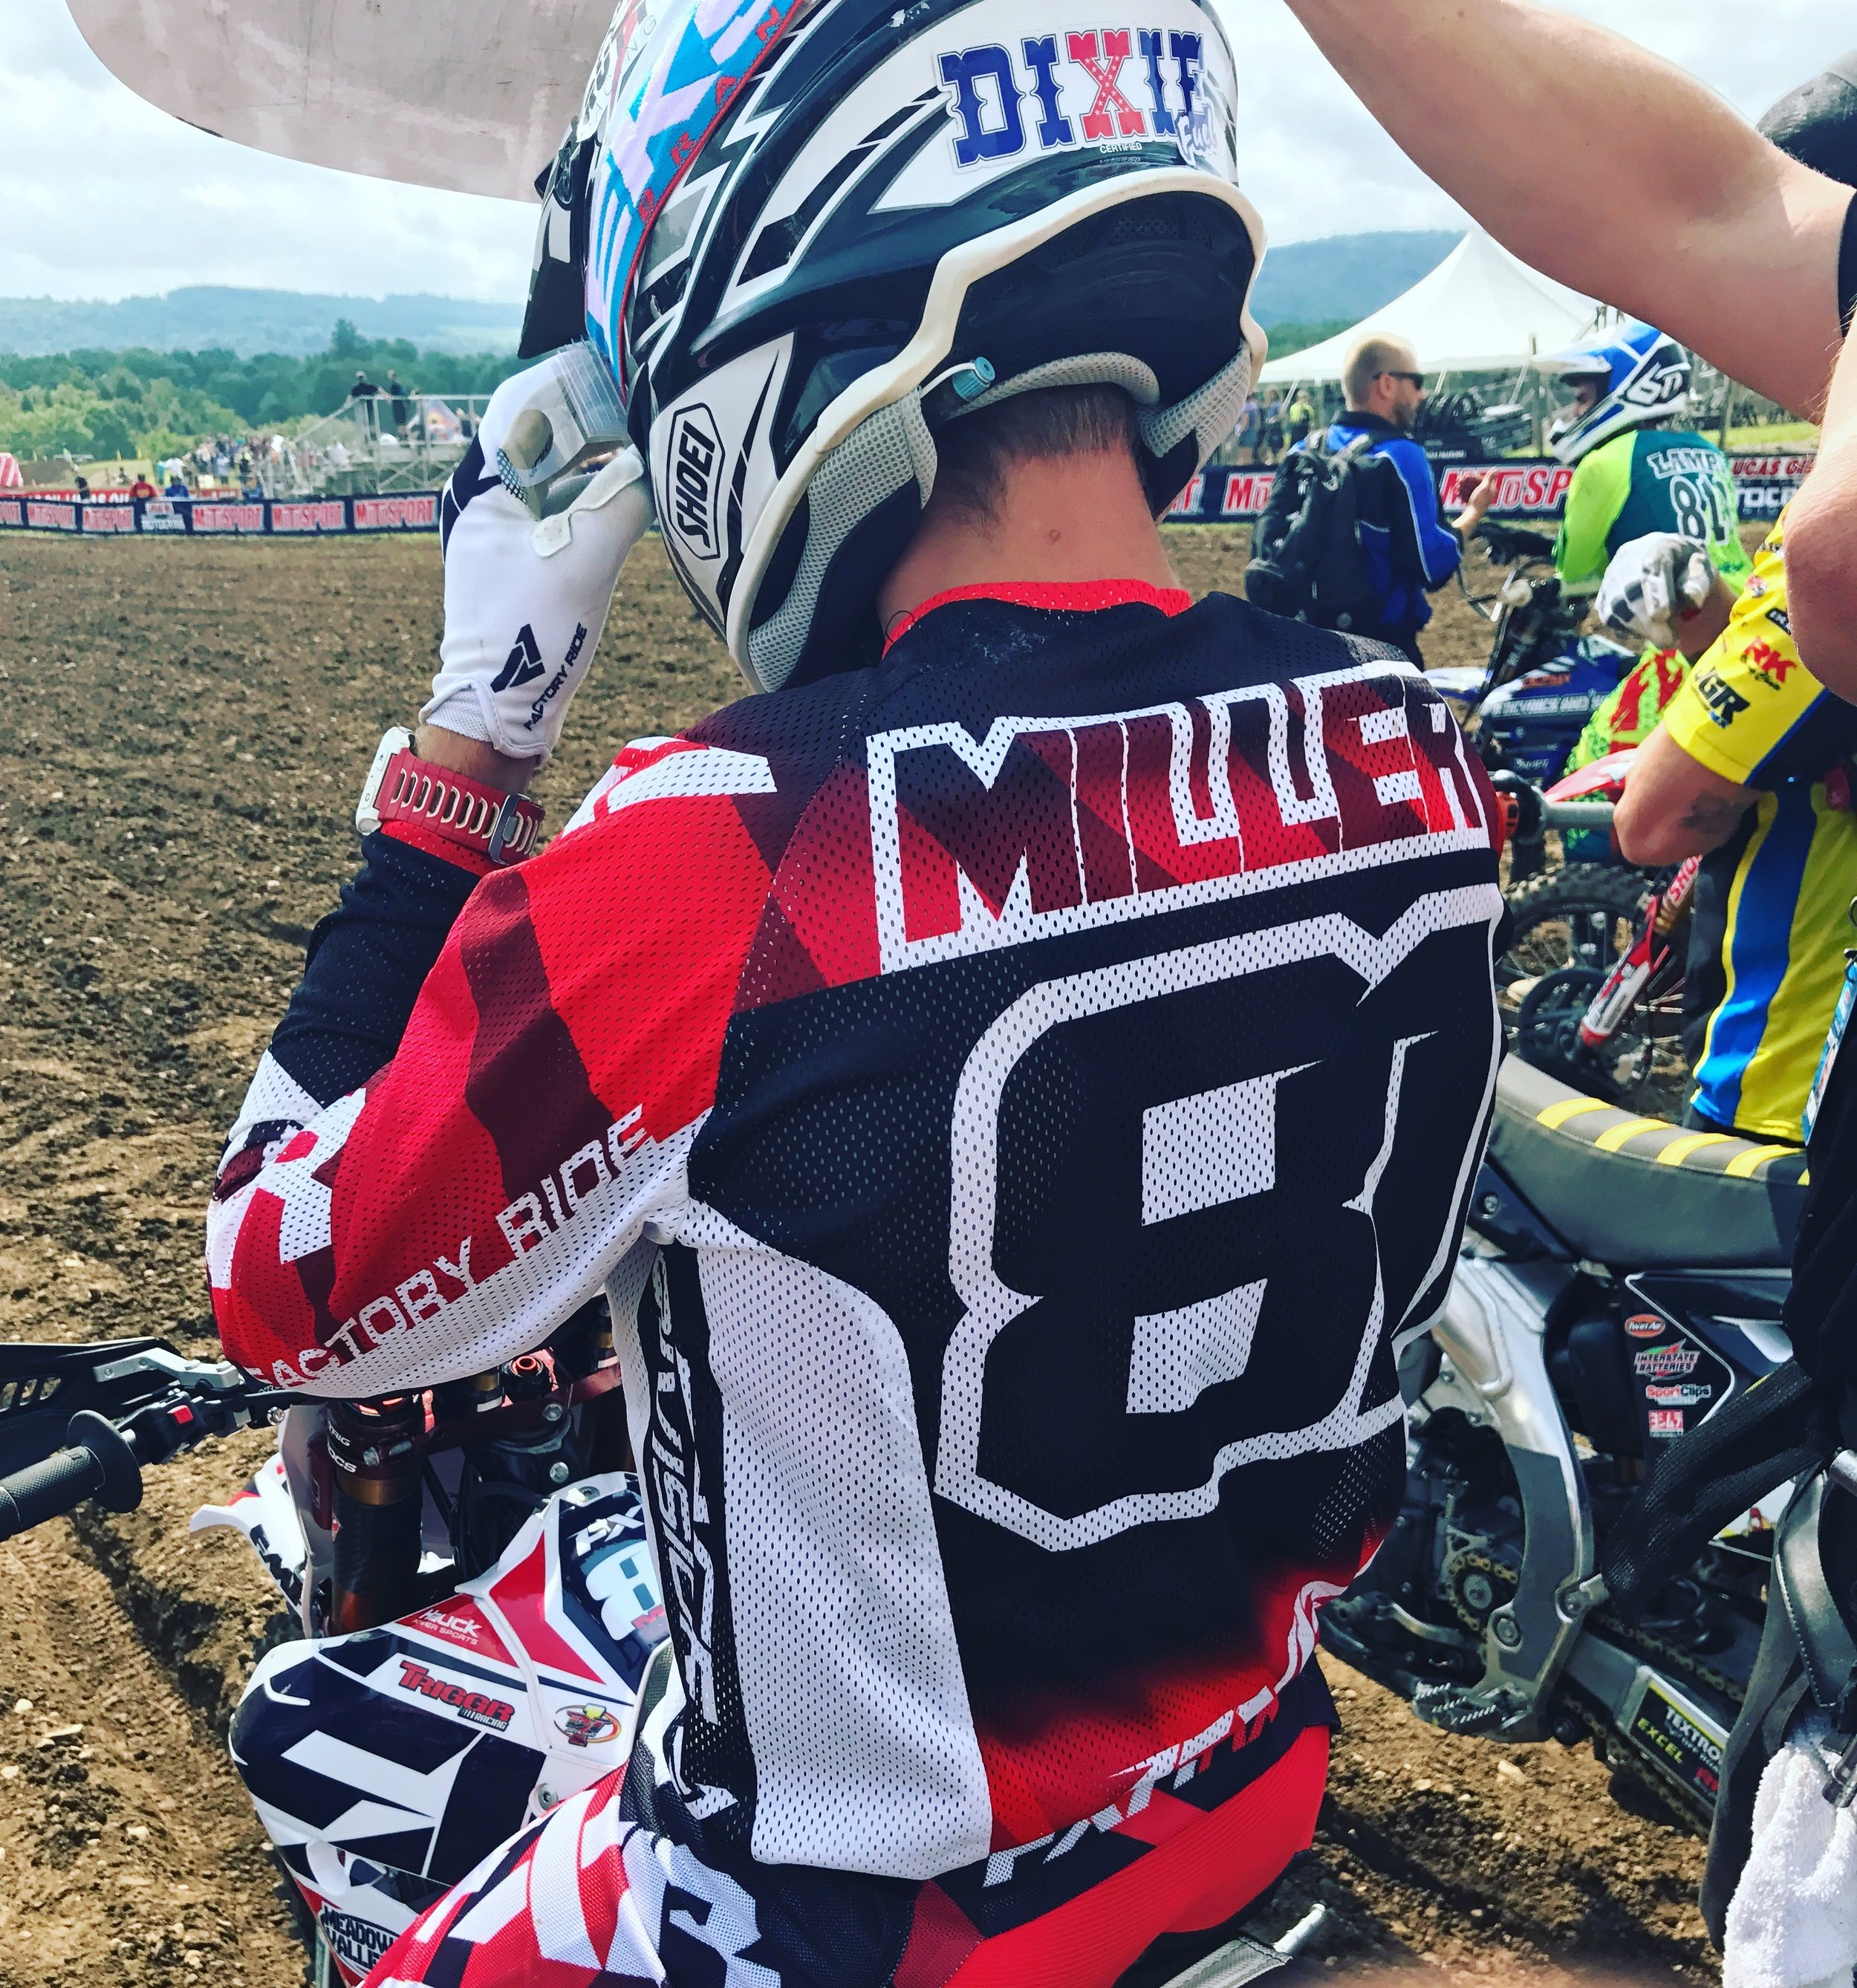 Privateer superstar Henry Miller was looking to have a strong finish at Unadilla and finish the year with a bangHenry and his Triggr Racing team prepped as best they could and were poised to due battle with the worlds best at the famous Unadilla race track.